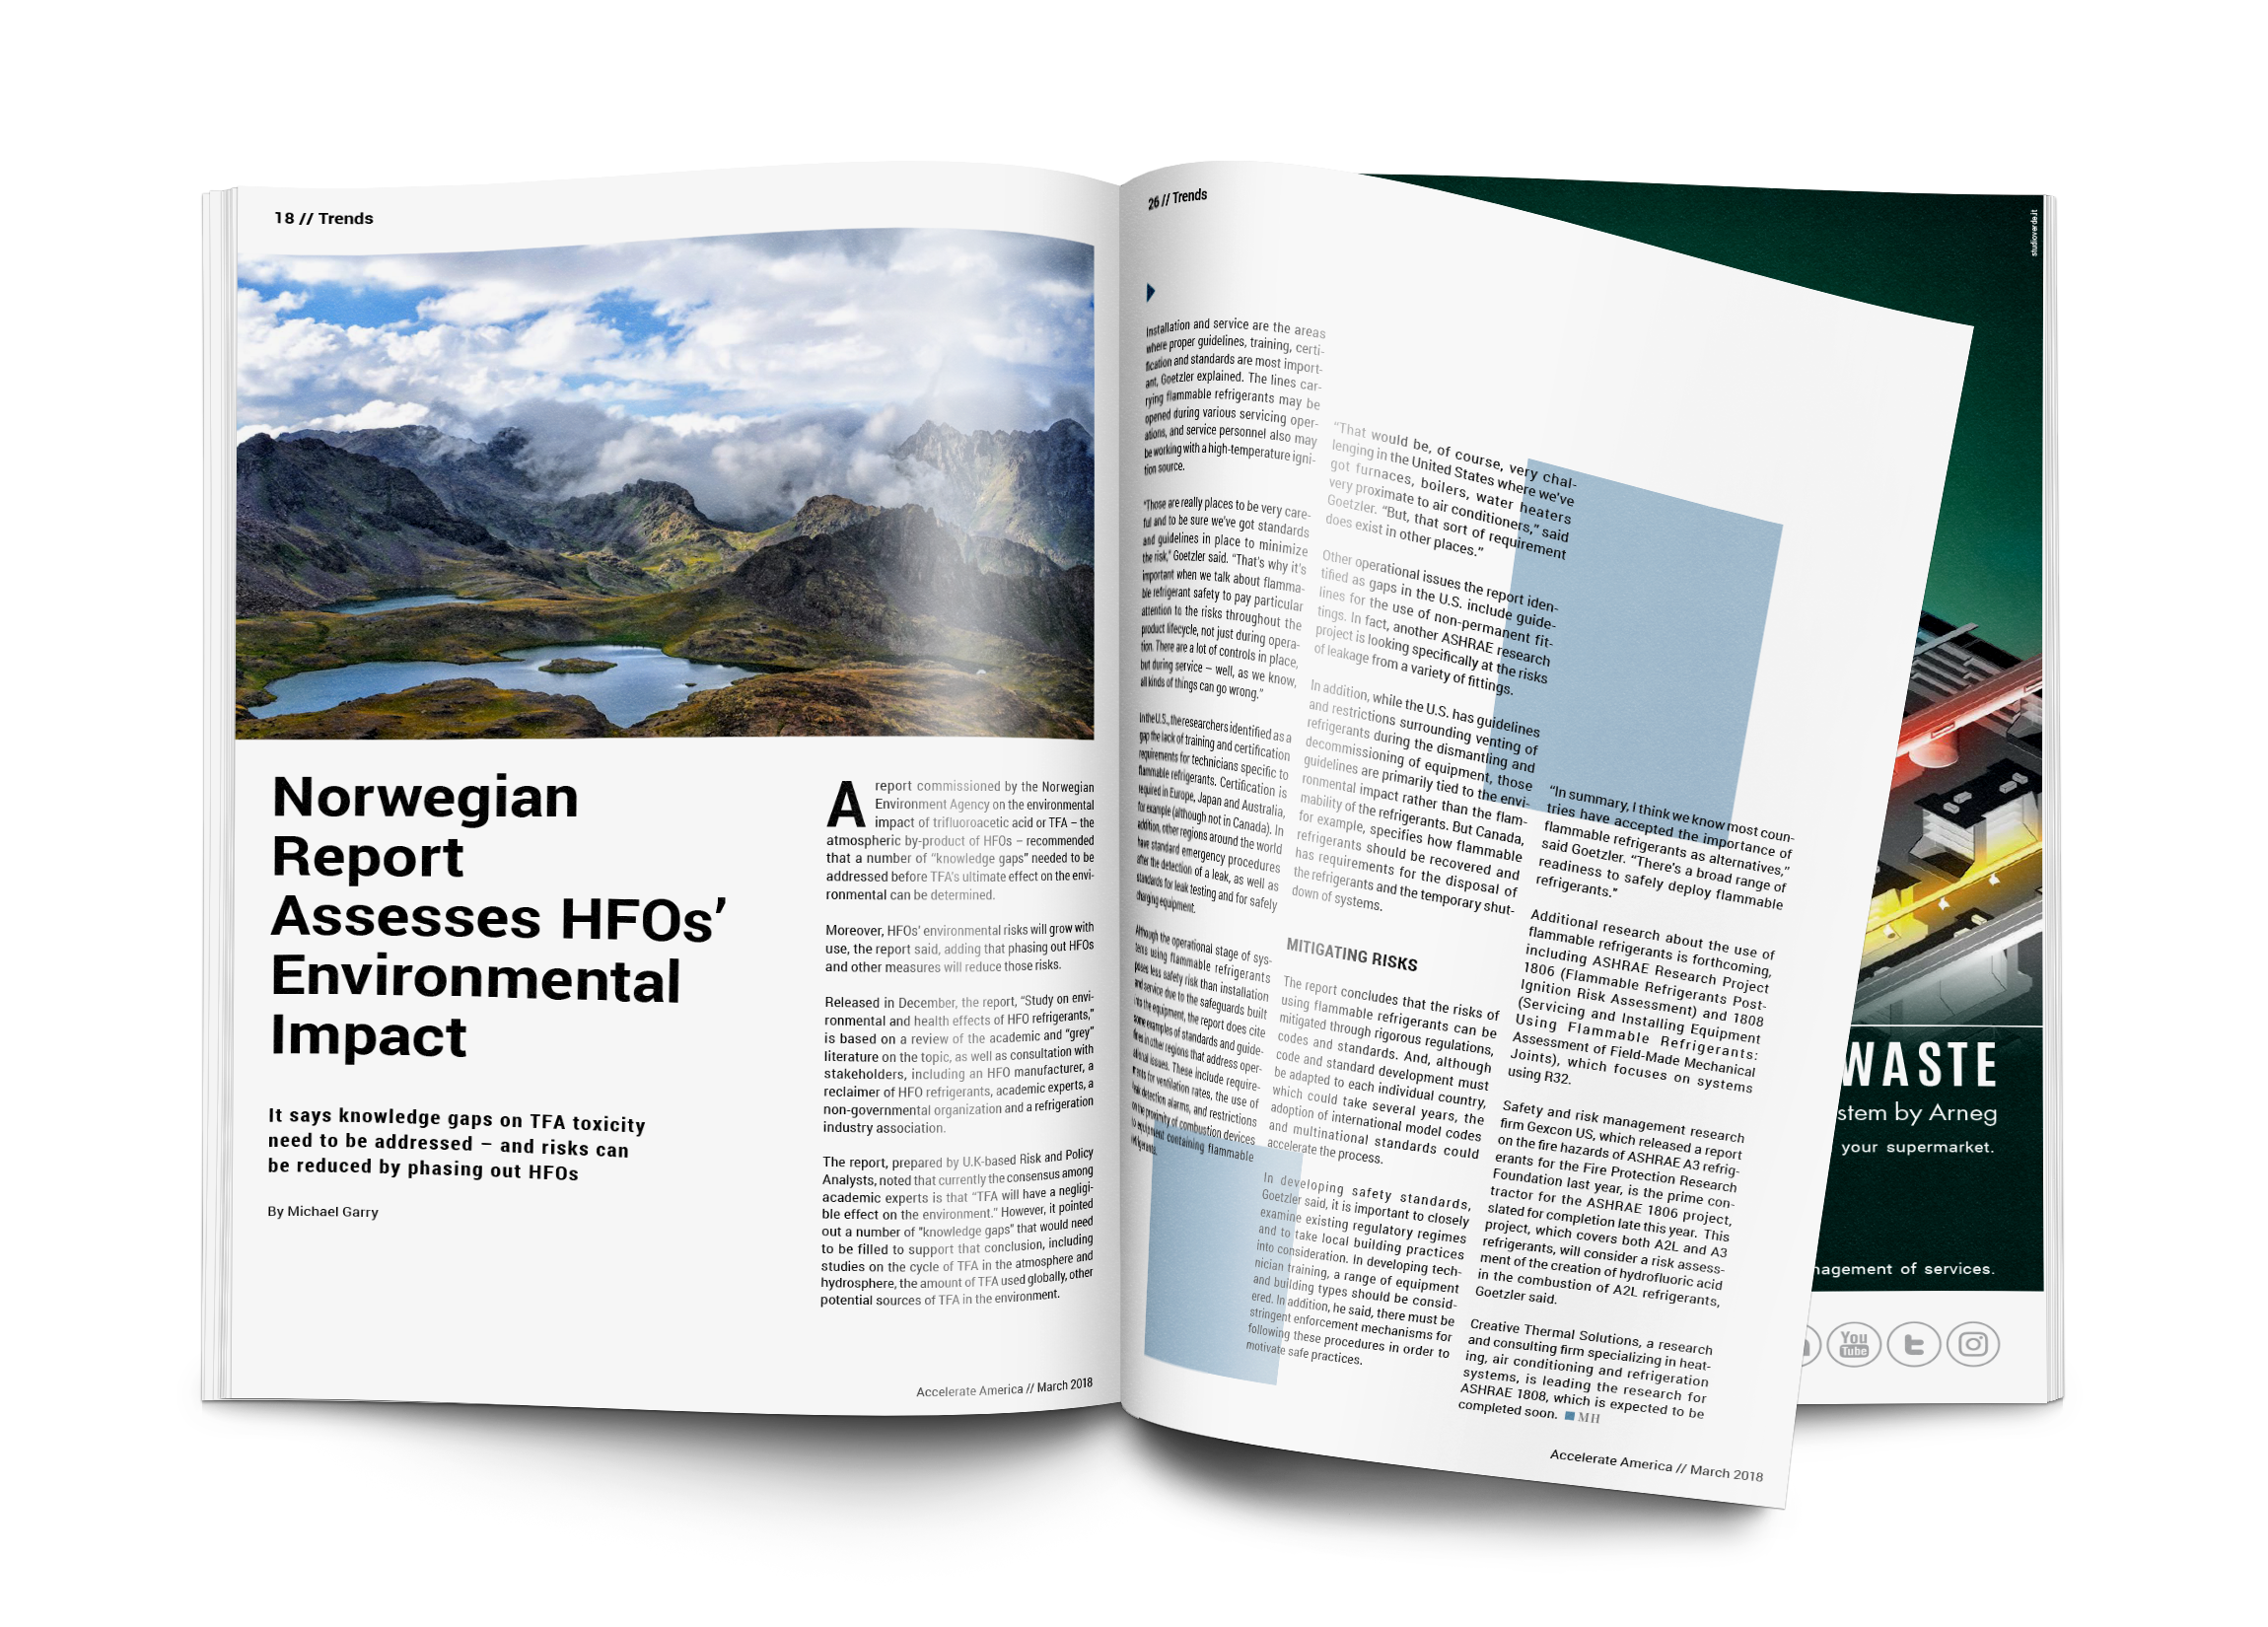 Norwegian Report Assesses HFOs' Environmental Impact